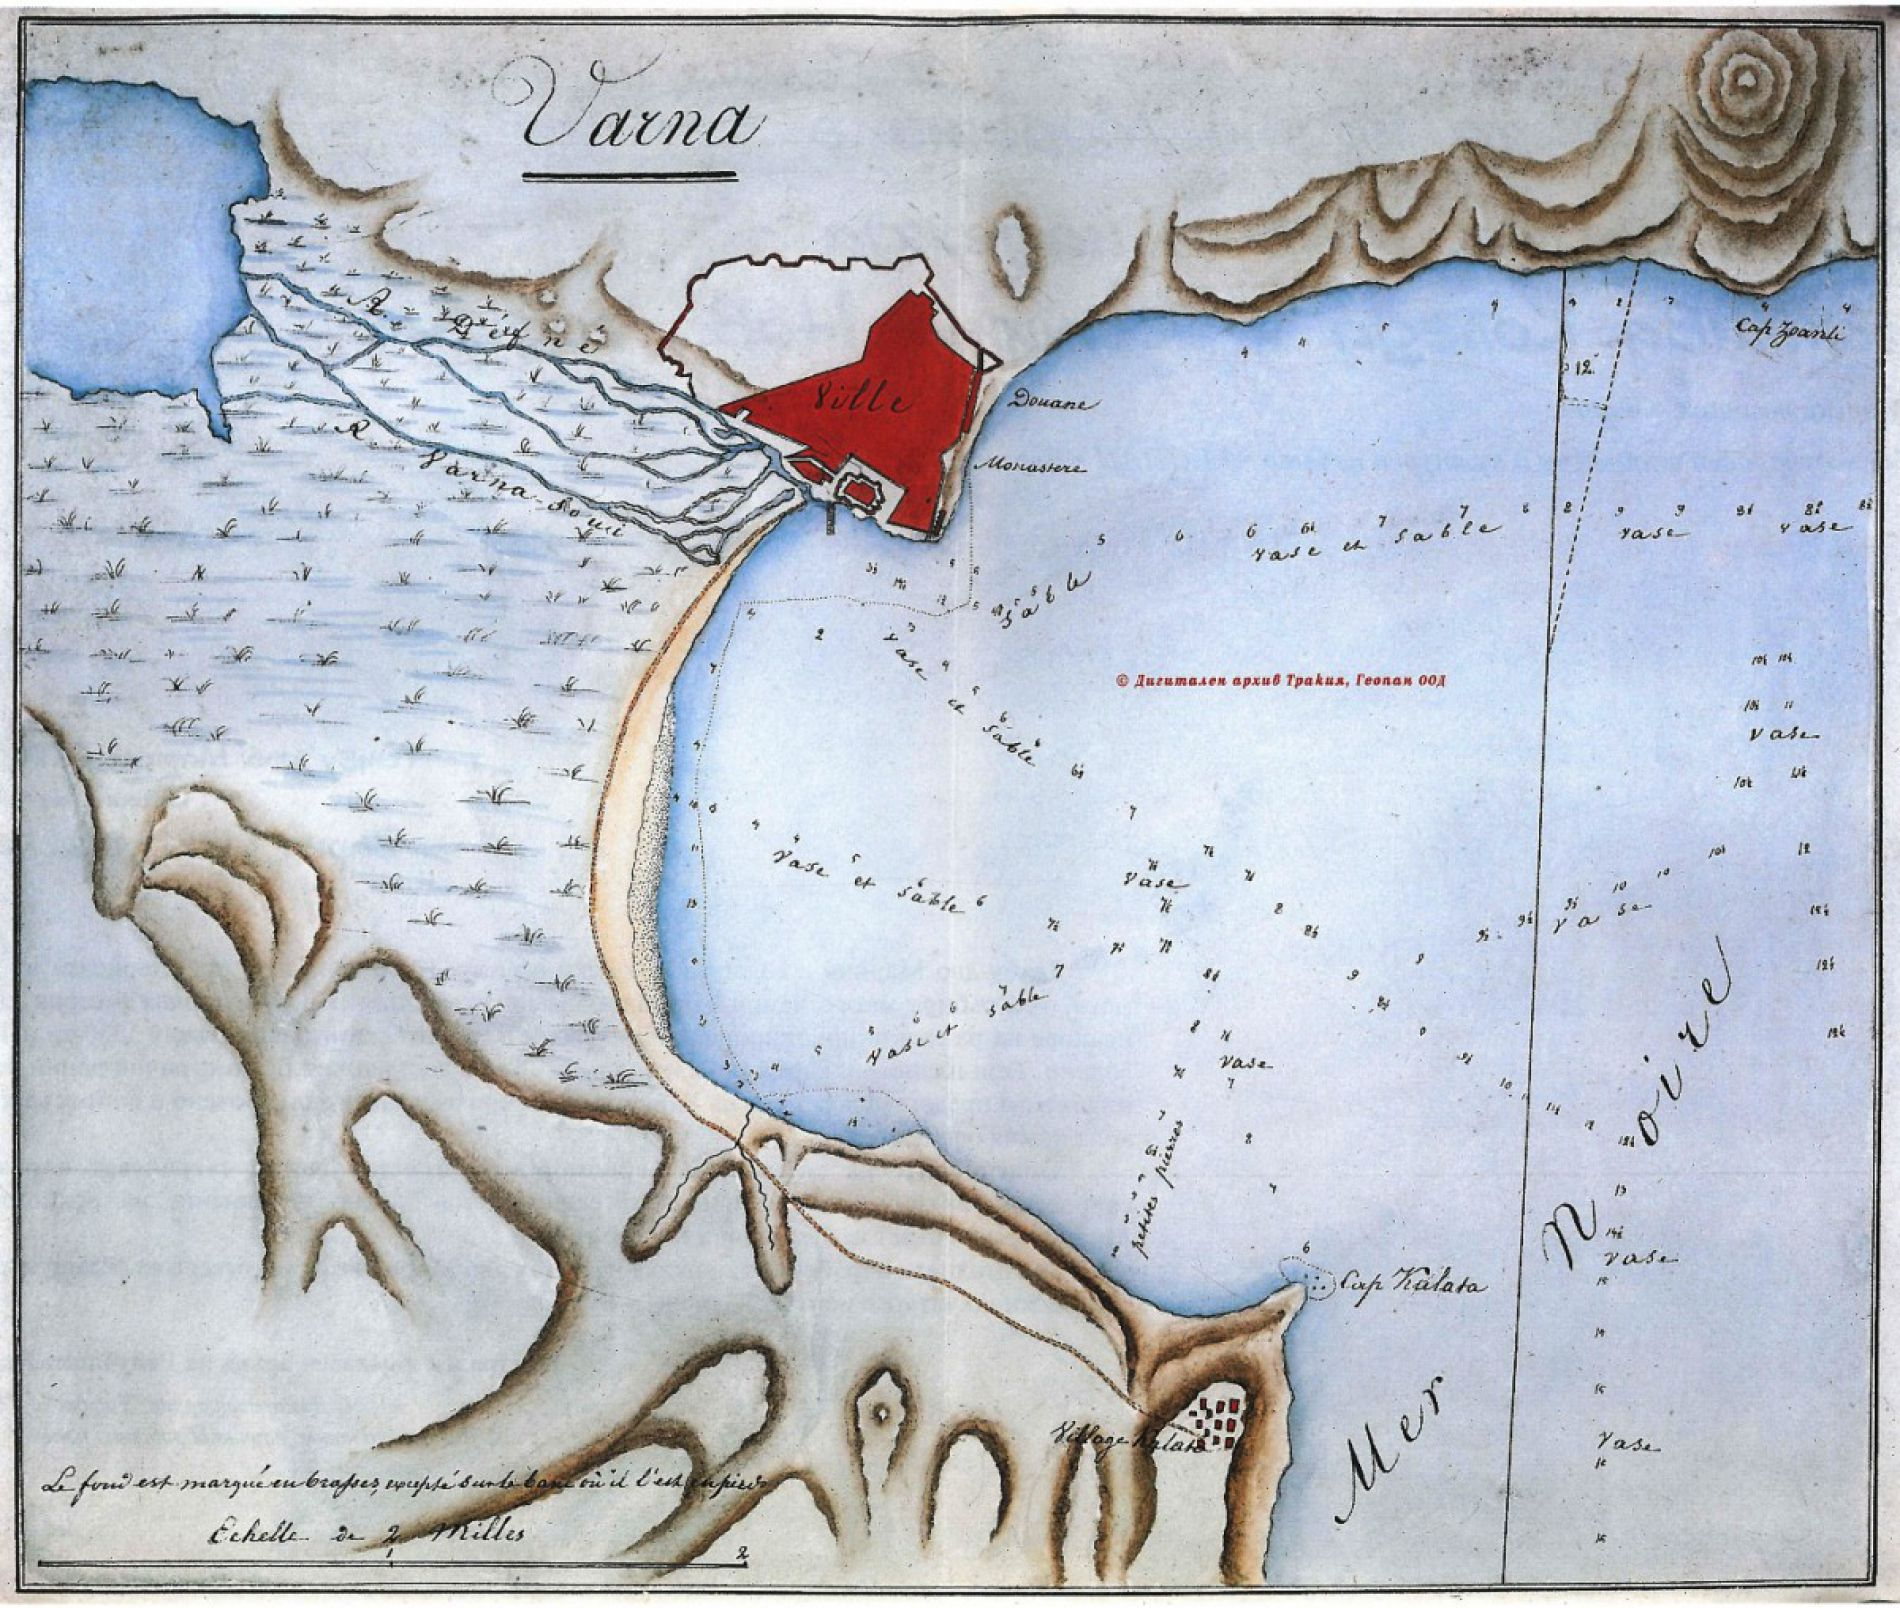 Varna Bay Plan 1830